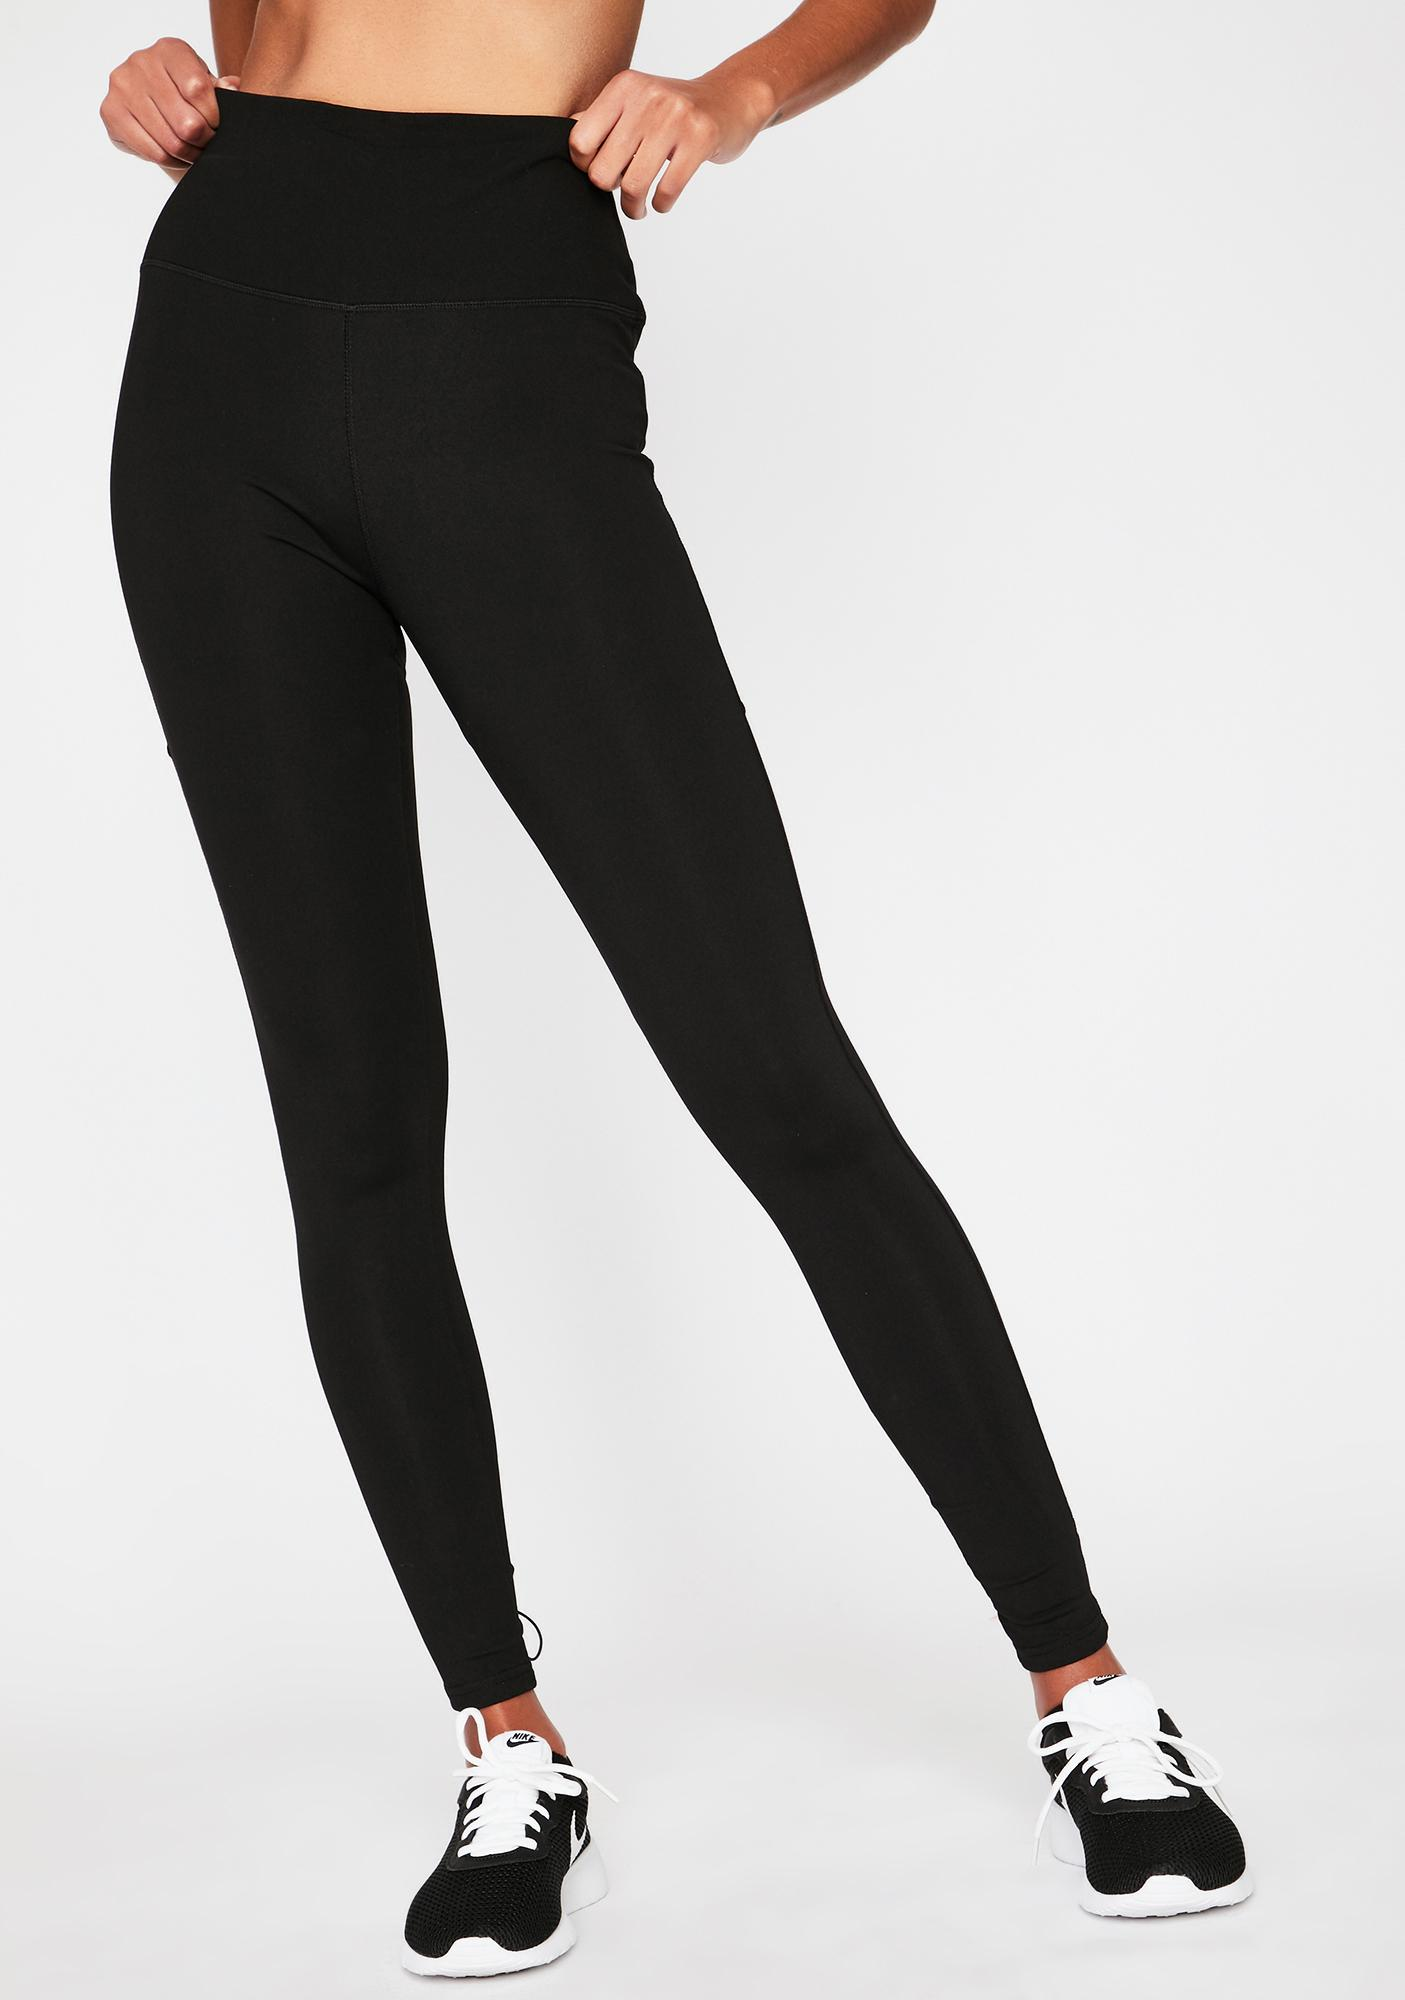 Just Won't Stop Sports Leggings